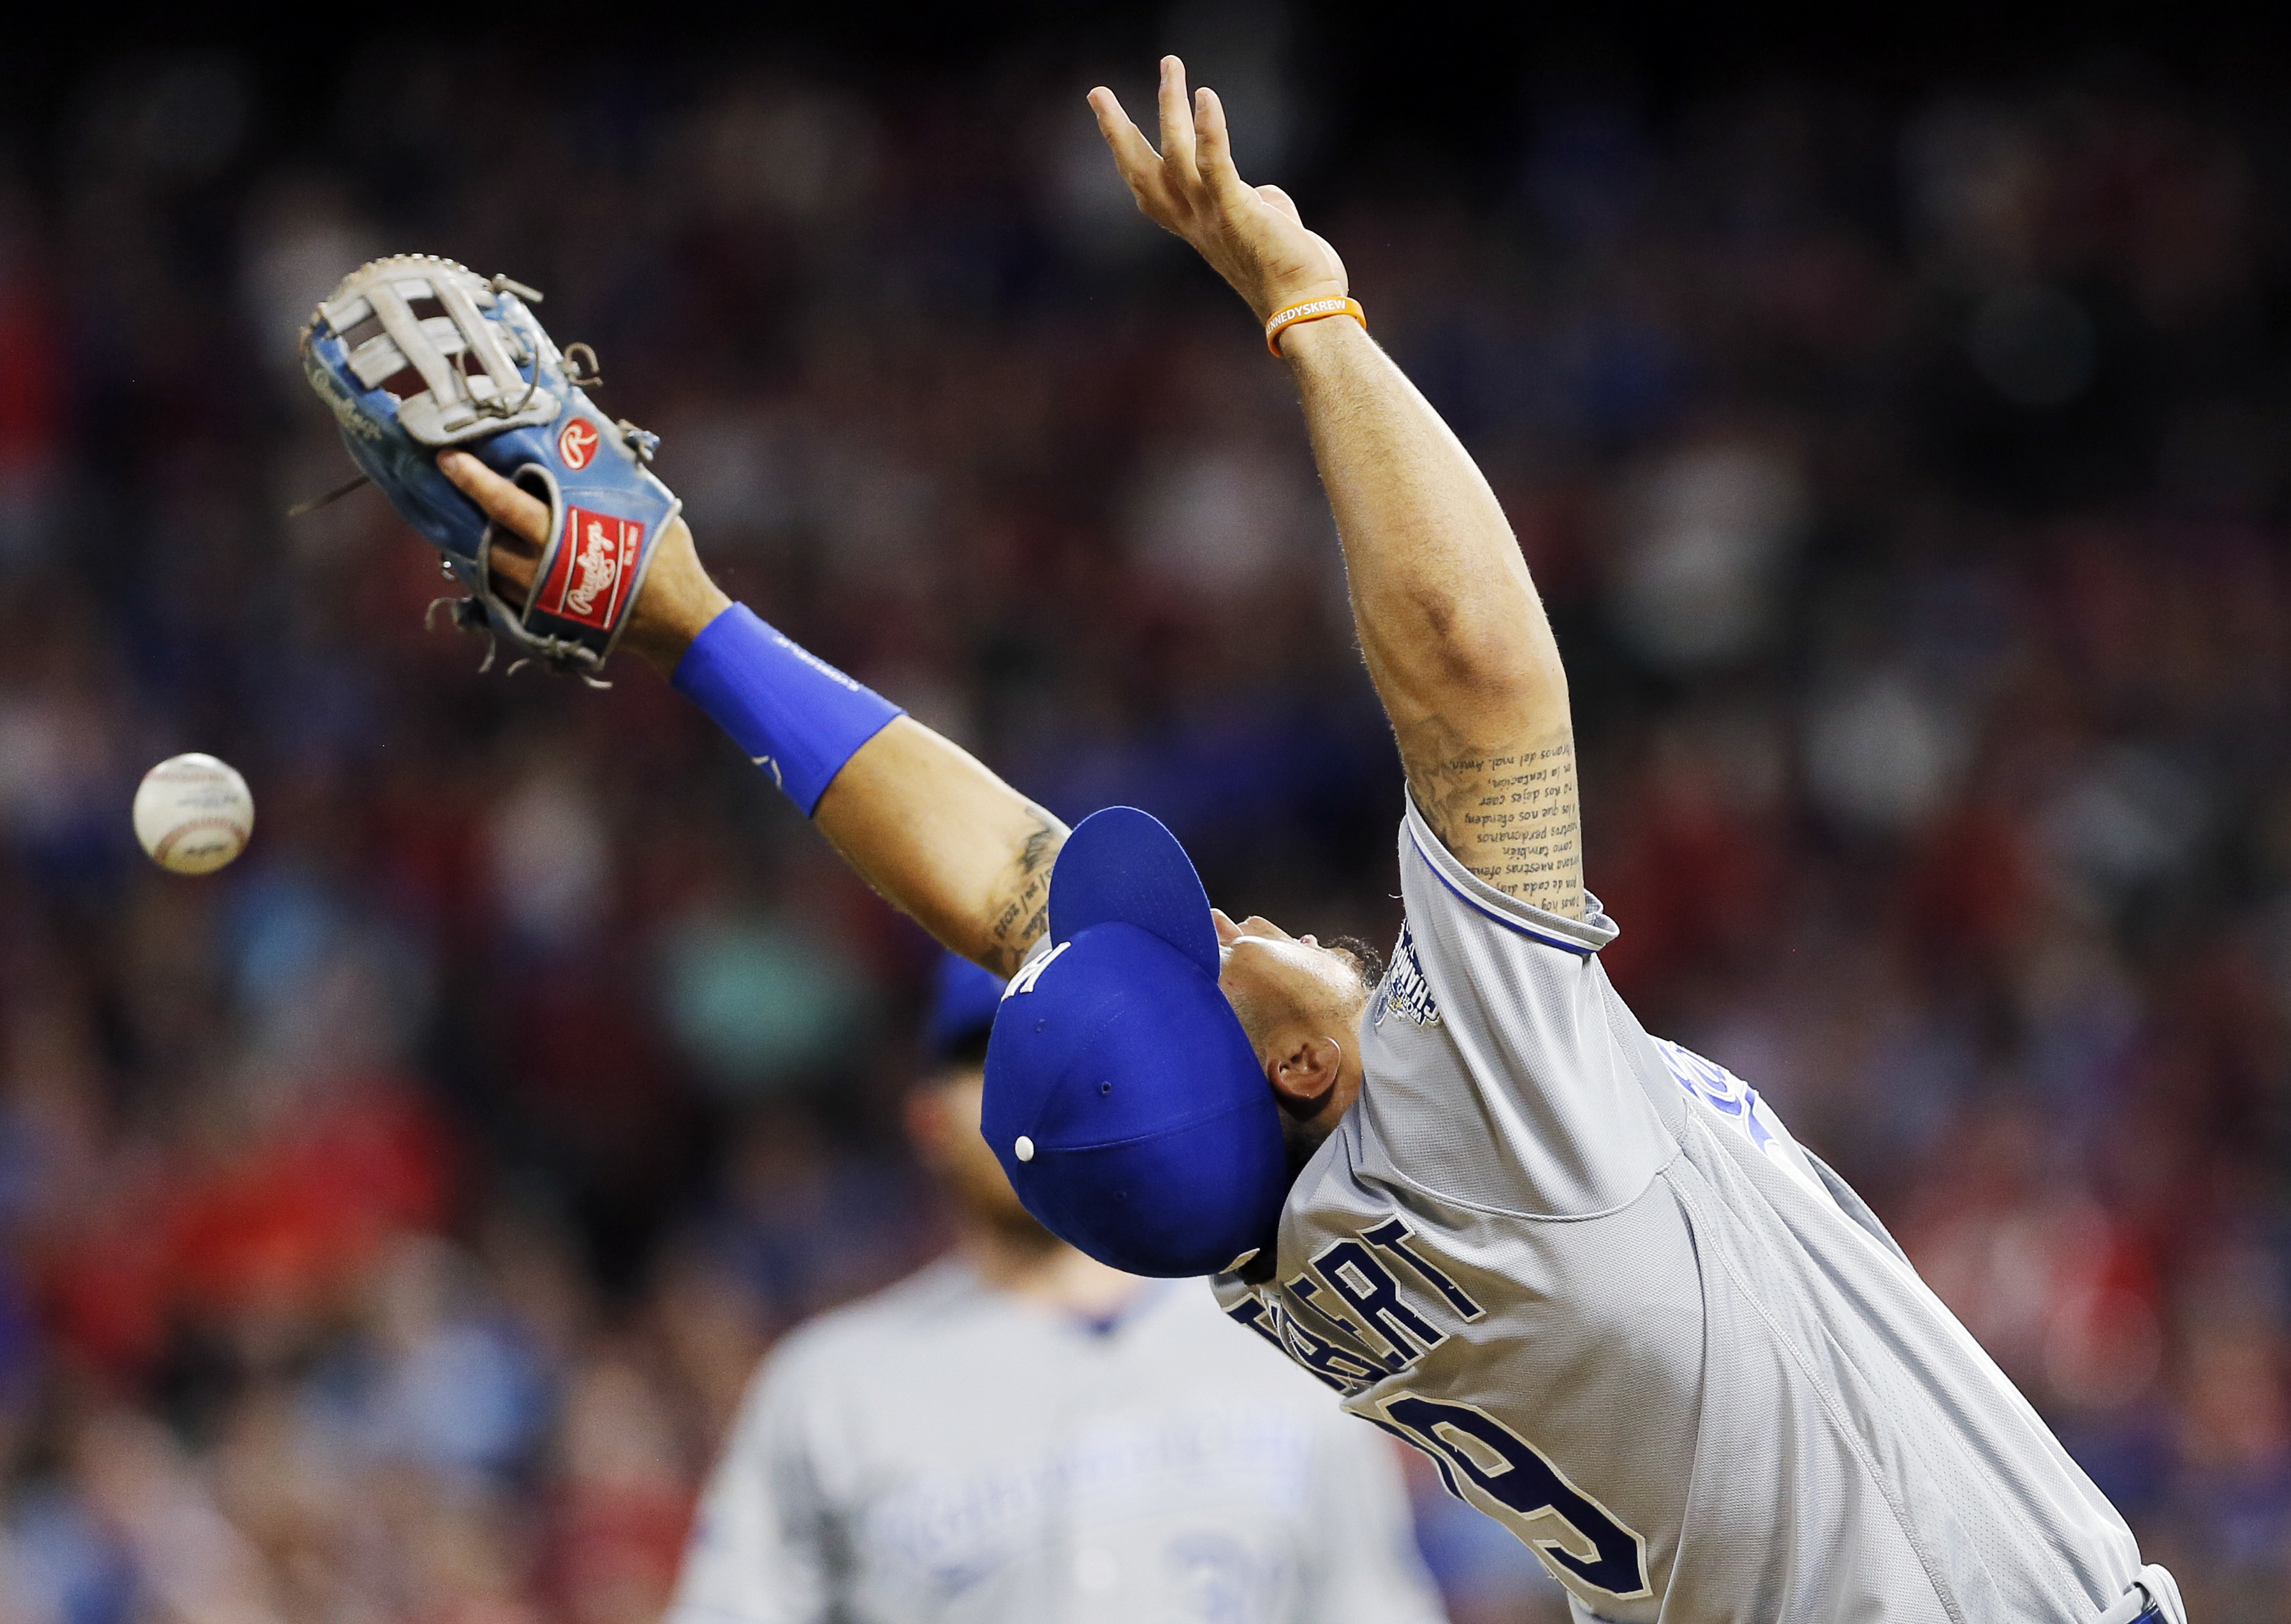 Kansas City Royals third baseman Cheslor Cuthbert (19) is unable to catch a pop fly hit by Texas Rangers' Mitch Moreland during the fifth inning of a baseball game, Saturday, July 30, 2016, in Arlington, Texas. Umpire Chris Conroy initially ruled that the